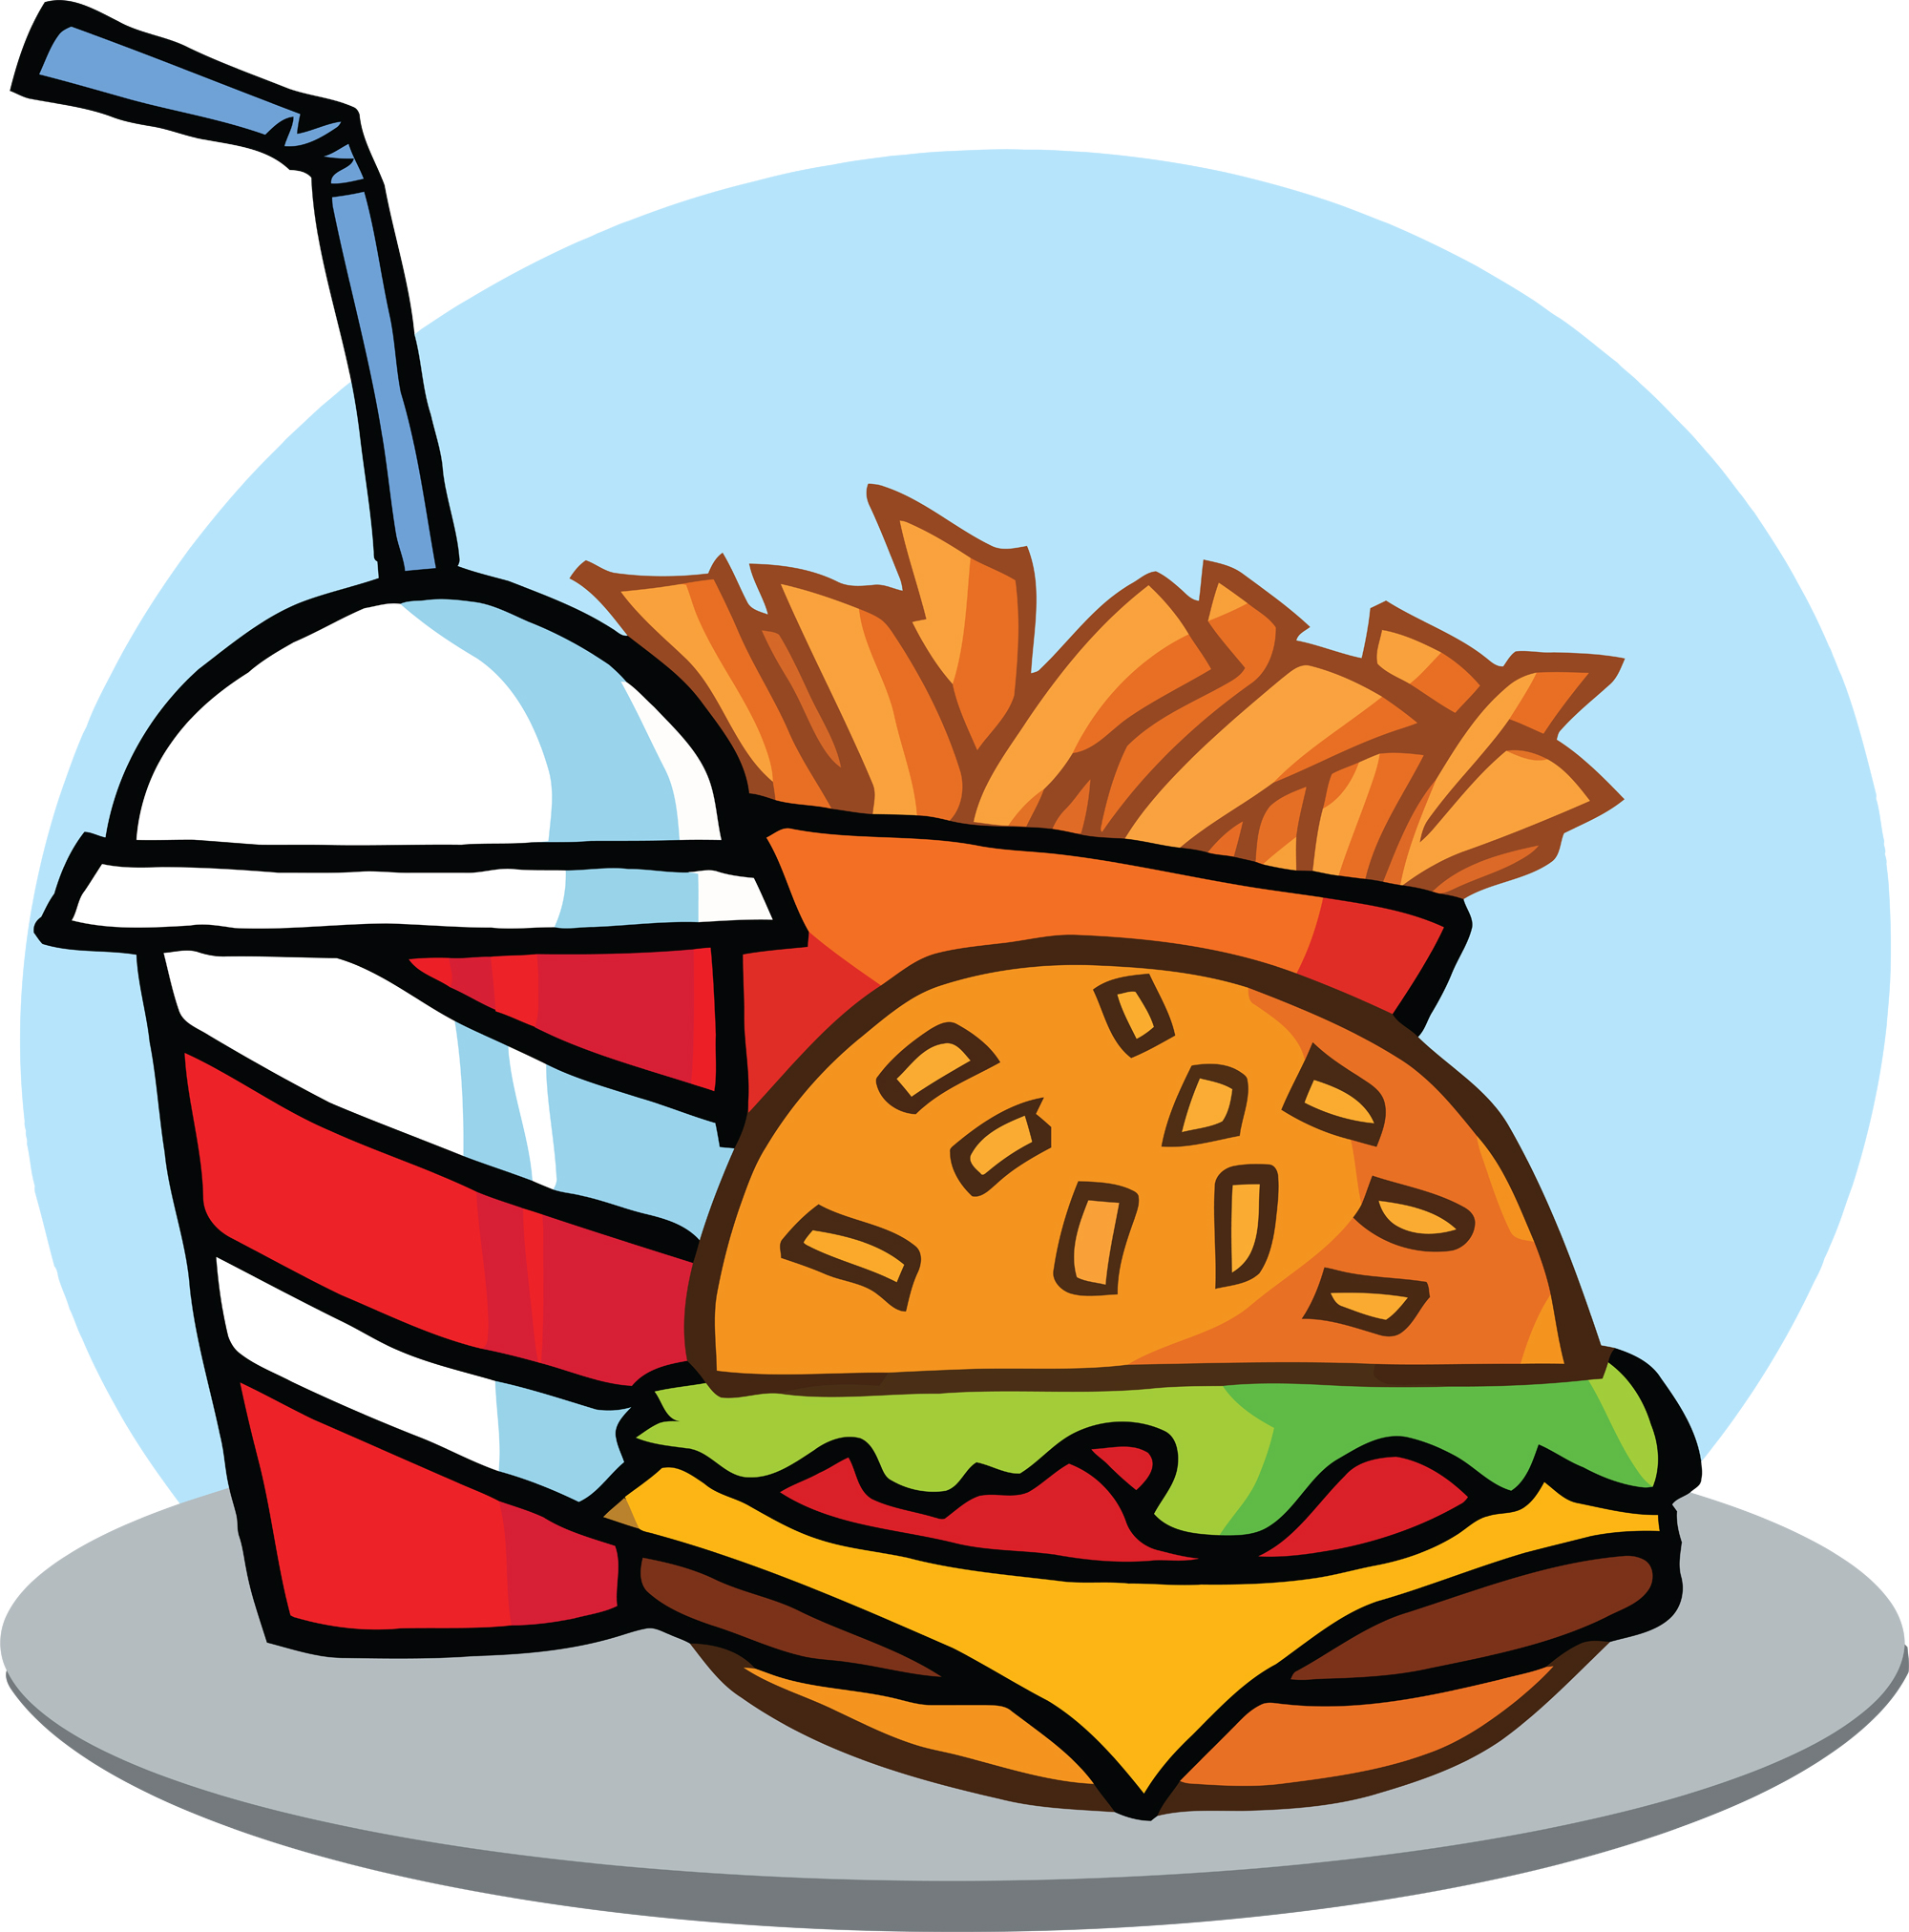 Fast Food Restaurant Clipart.